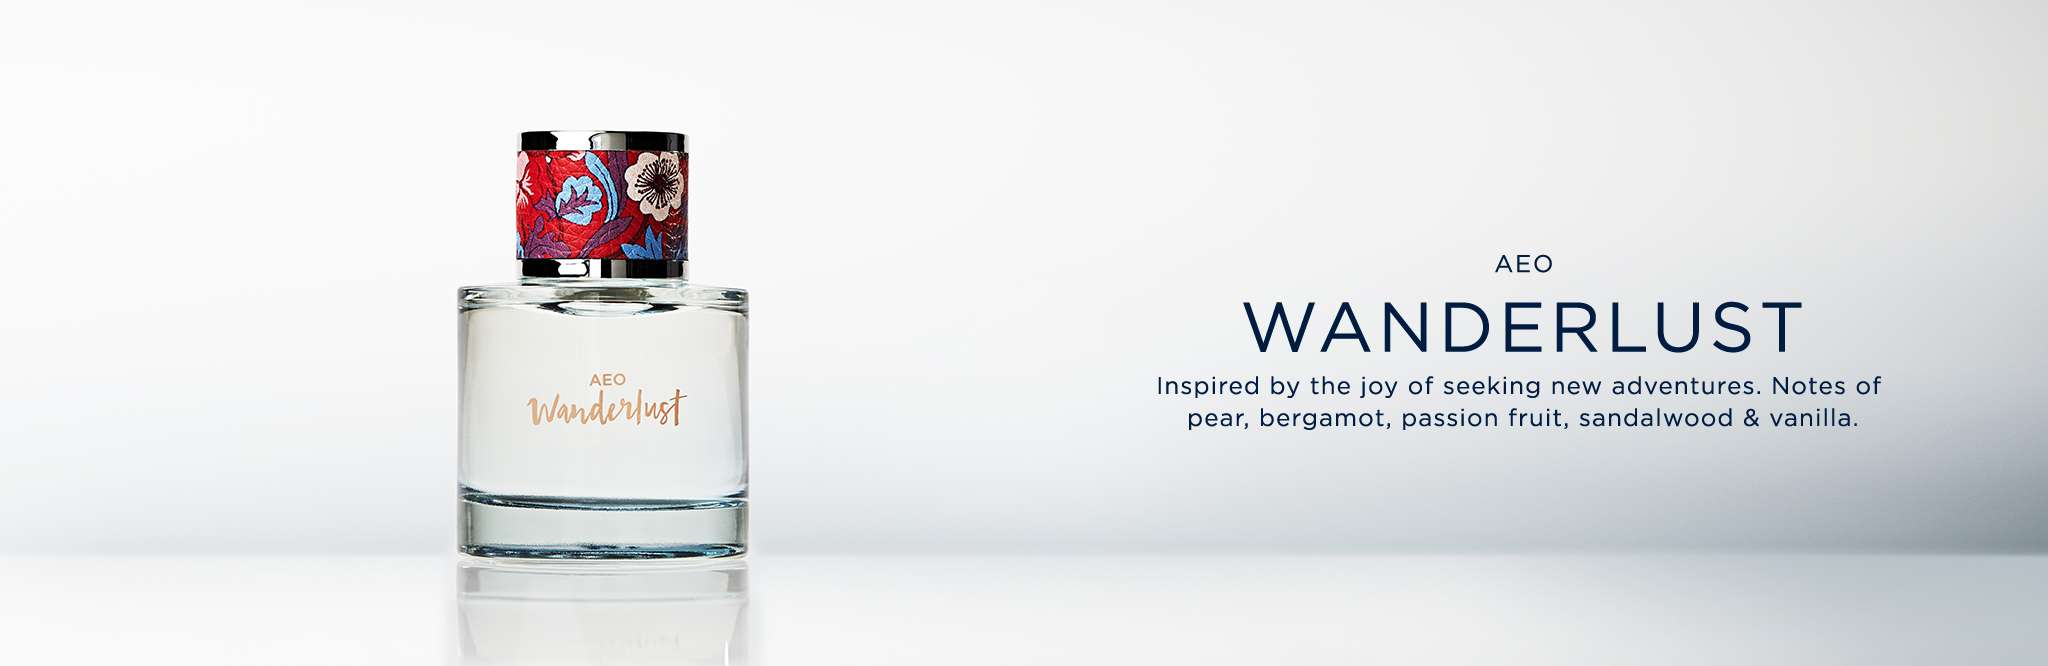 Forex trading perth water